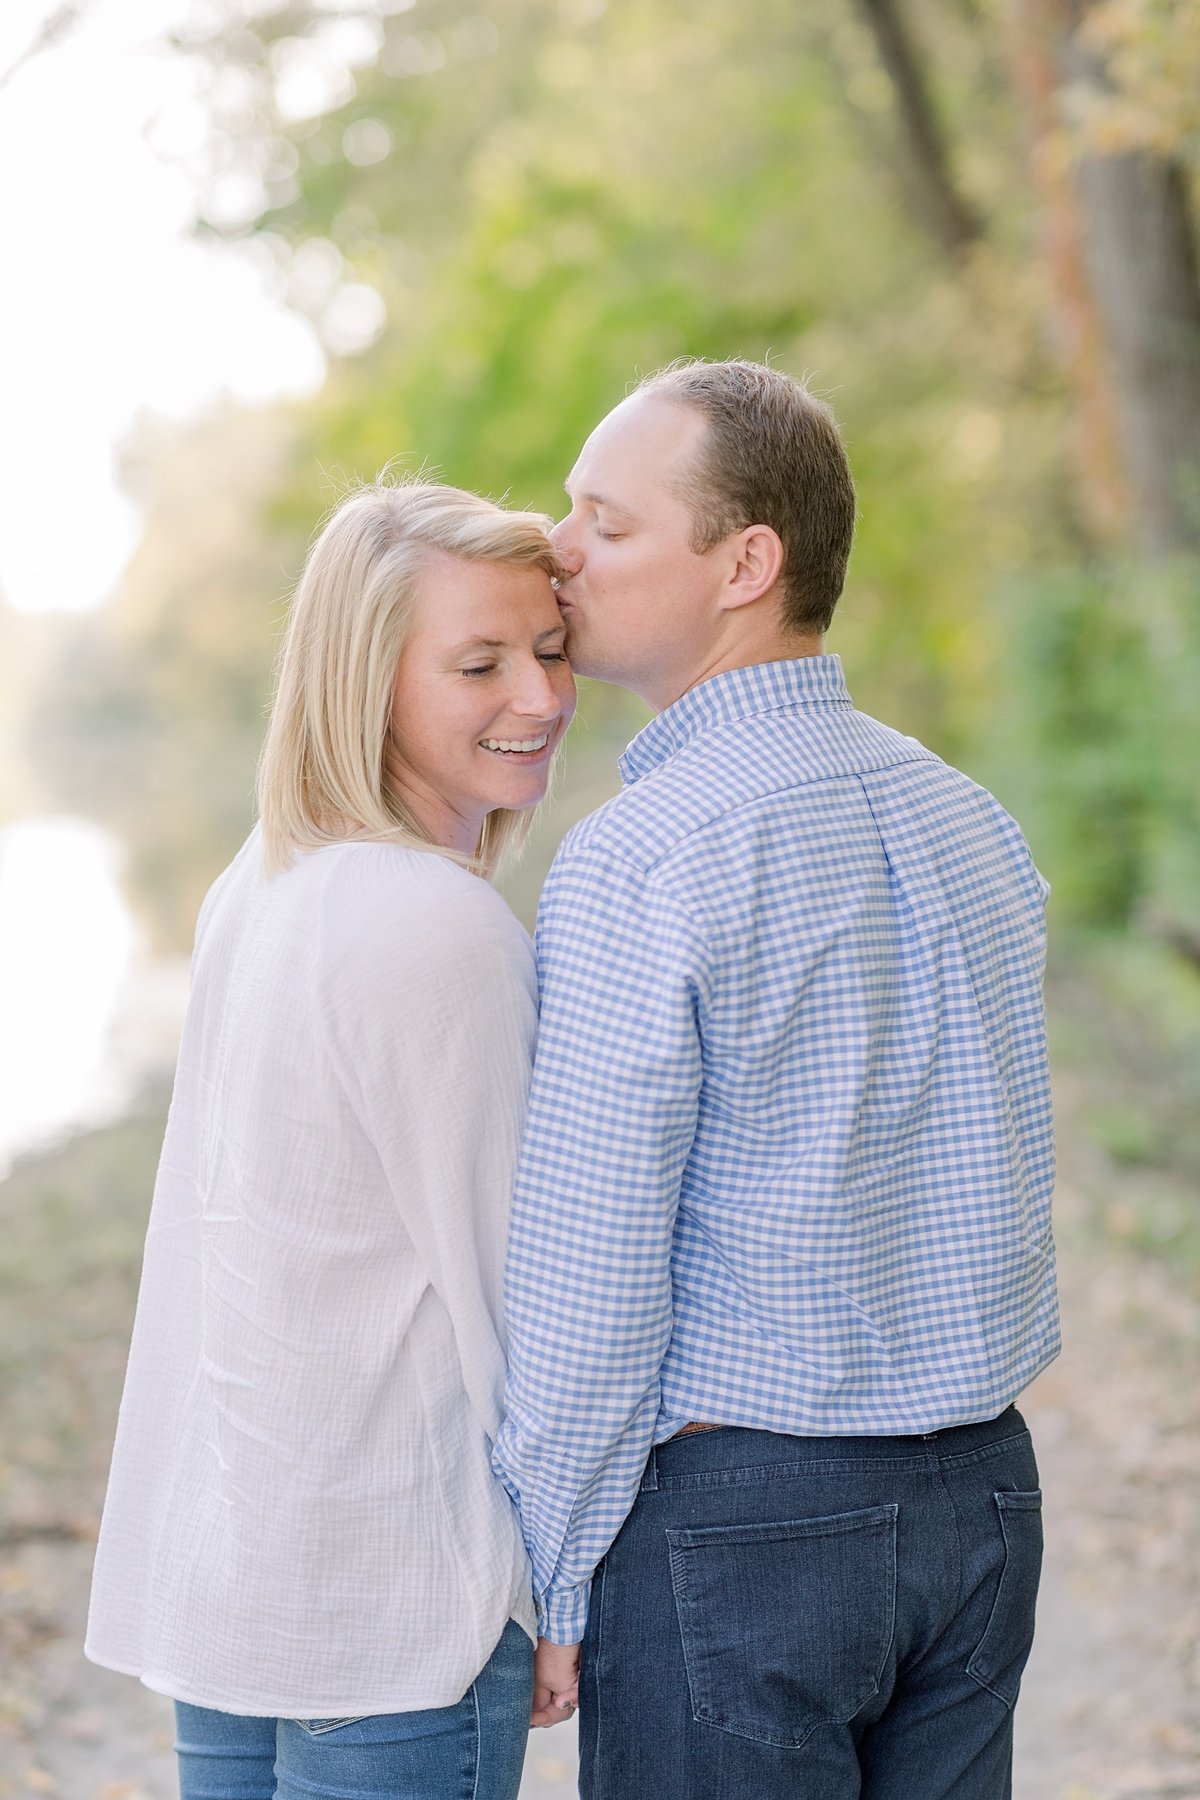 Holcomb Gardens Engagement Session Indianapolis, Indiana Wedding Photographer Alison Mae Photography_3180